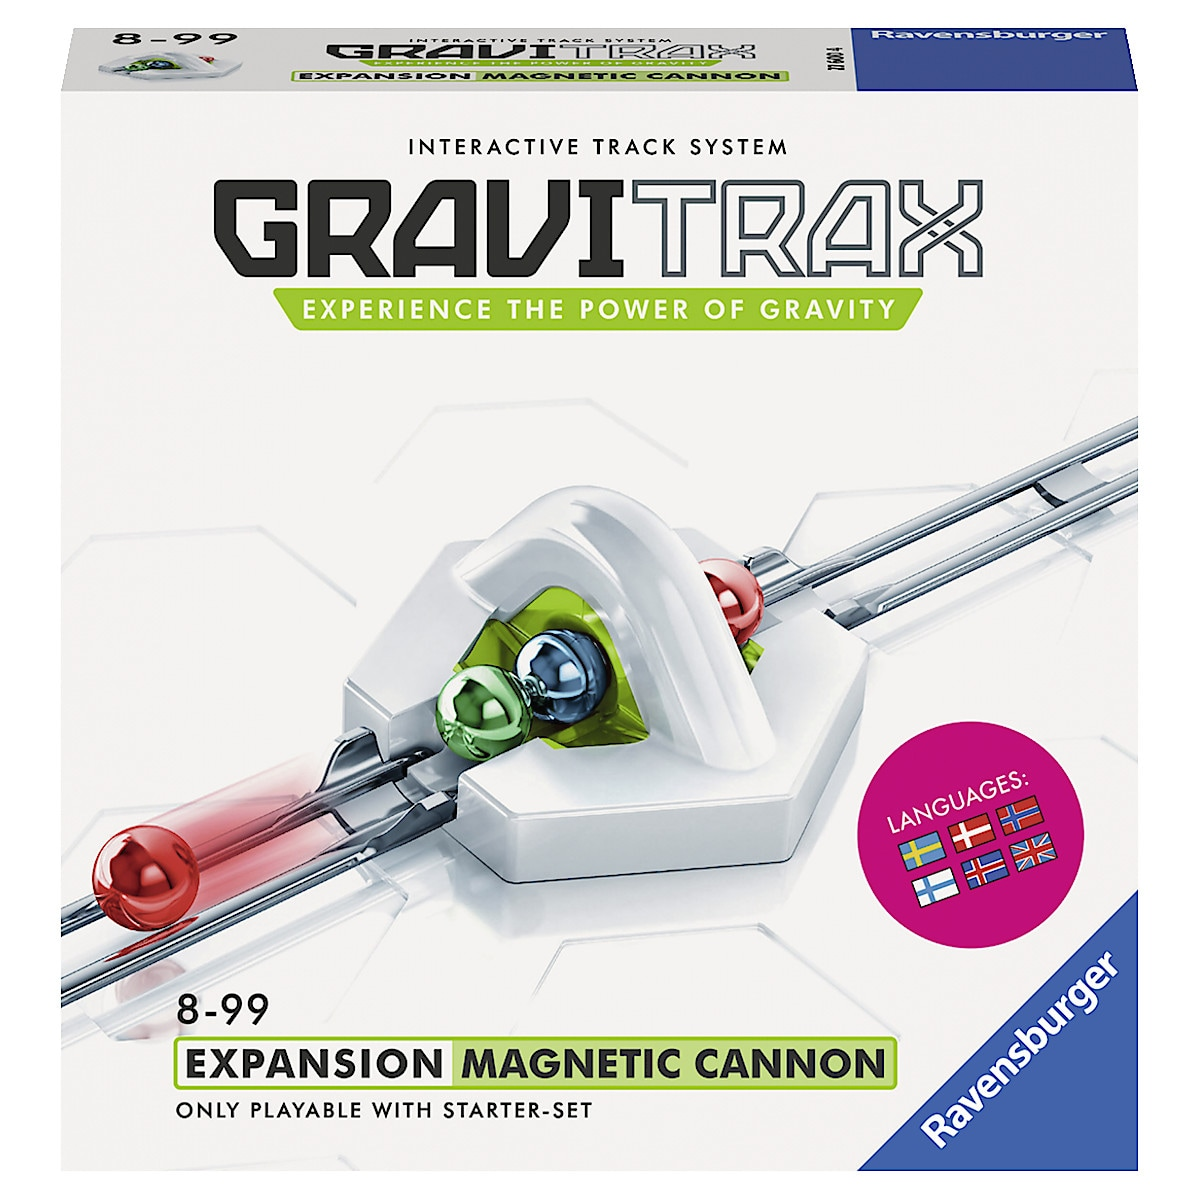 GraviTrax Expansion Magnetic Cannon, Ravensburger